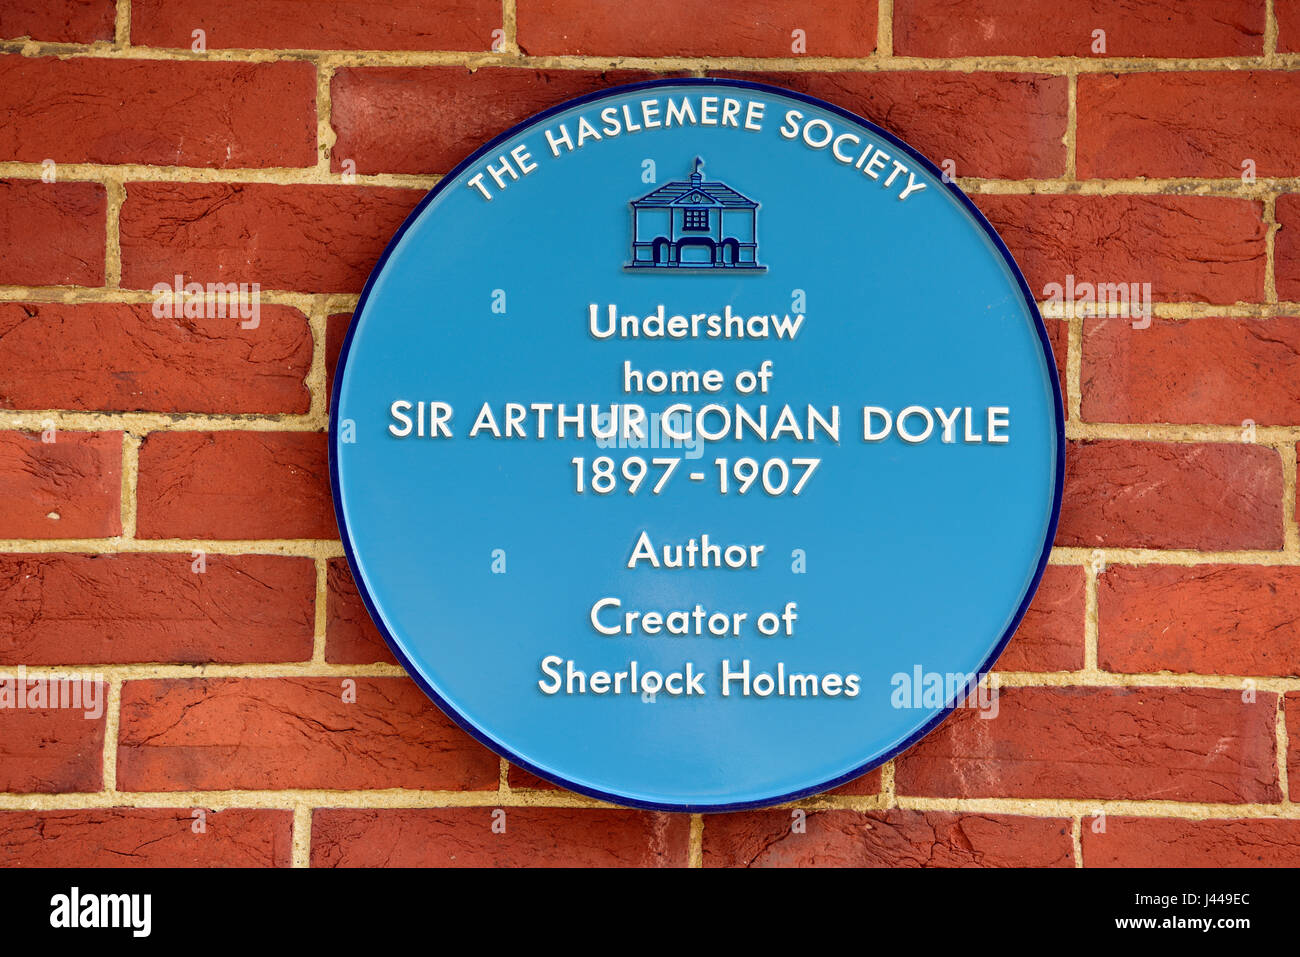 Blue Plaque on wall of former home of the late Sir Arthur Conan Doyle (22 May 1859-7 July 1930) who lived at Undershaw - Stock Image